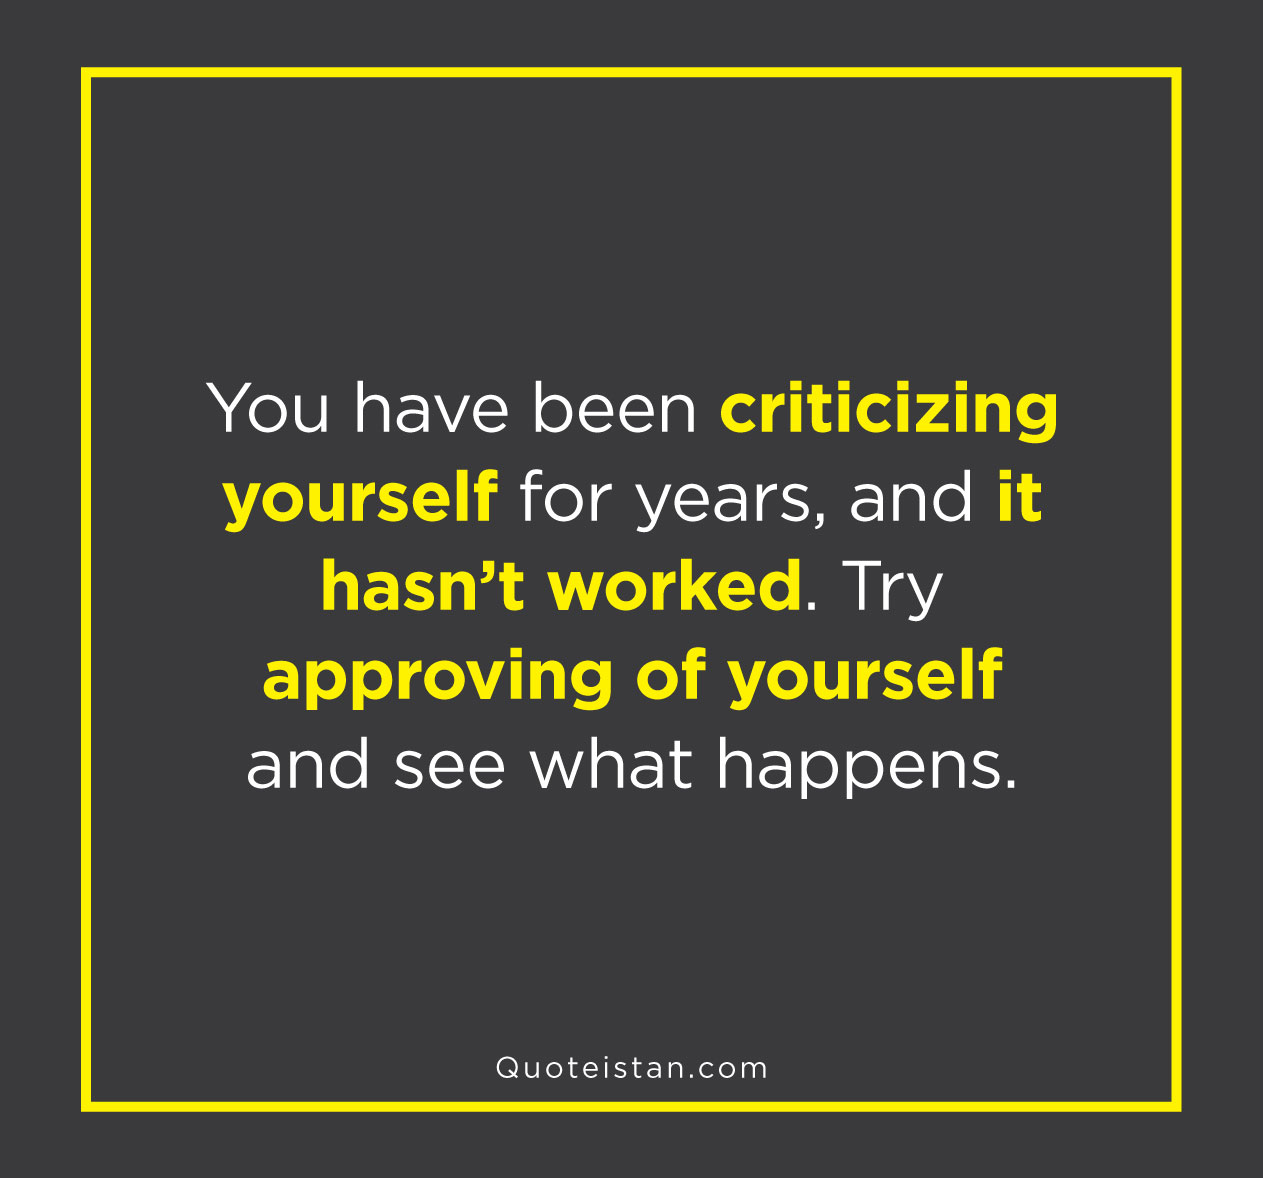 You have been criticizing yourself for years, and it hasn't worked. Try approving of yourself and see what happens.